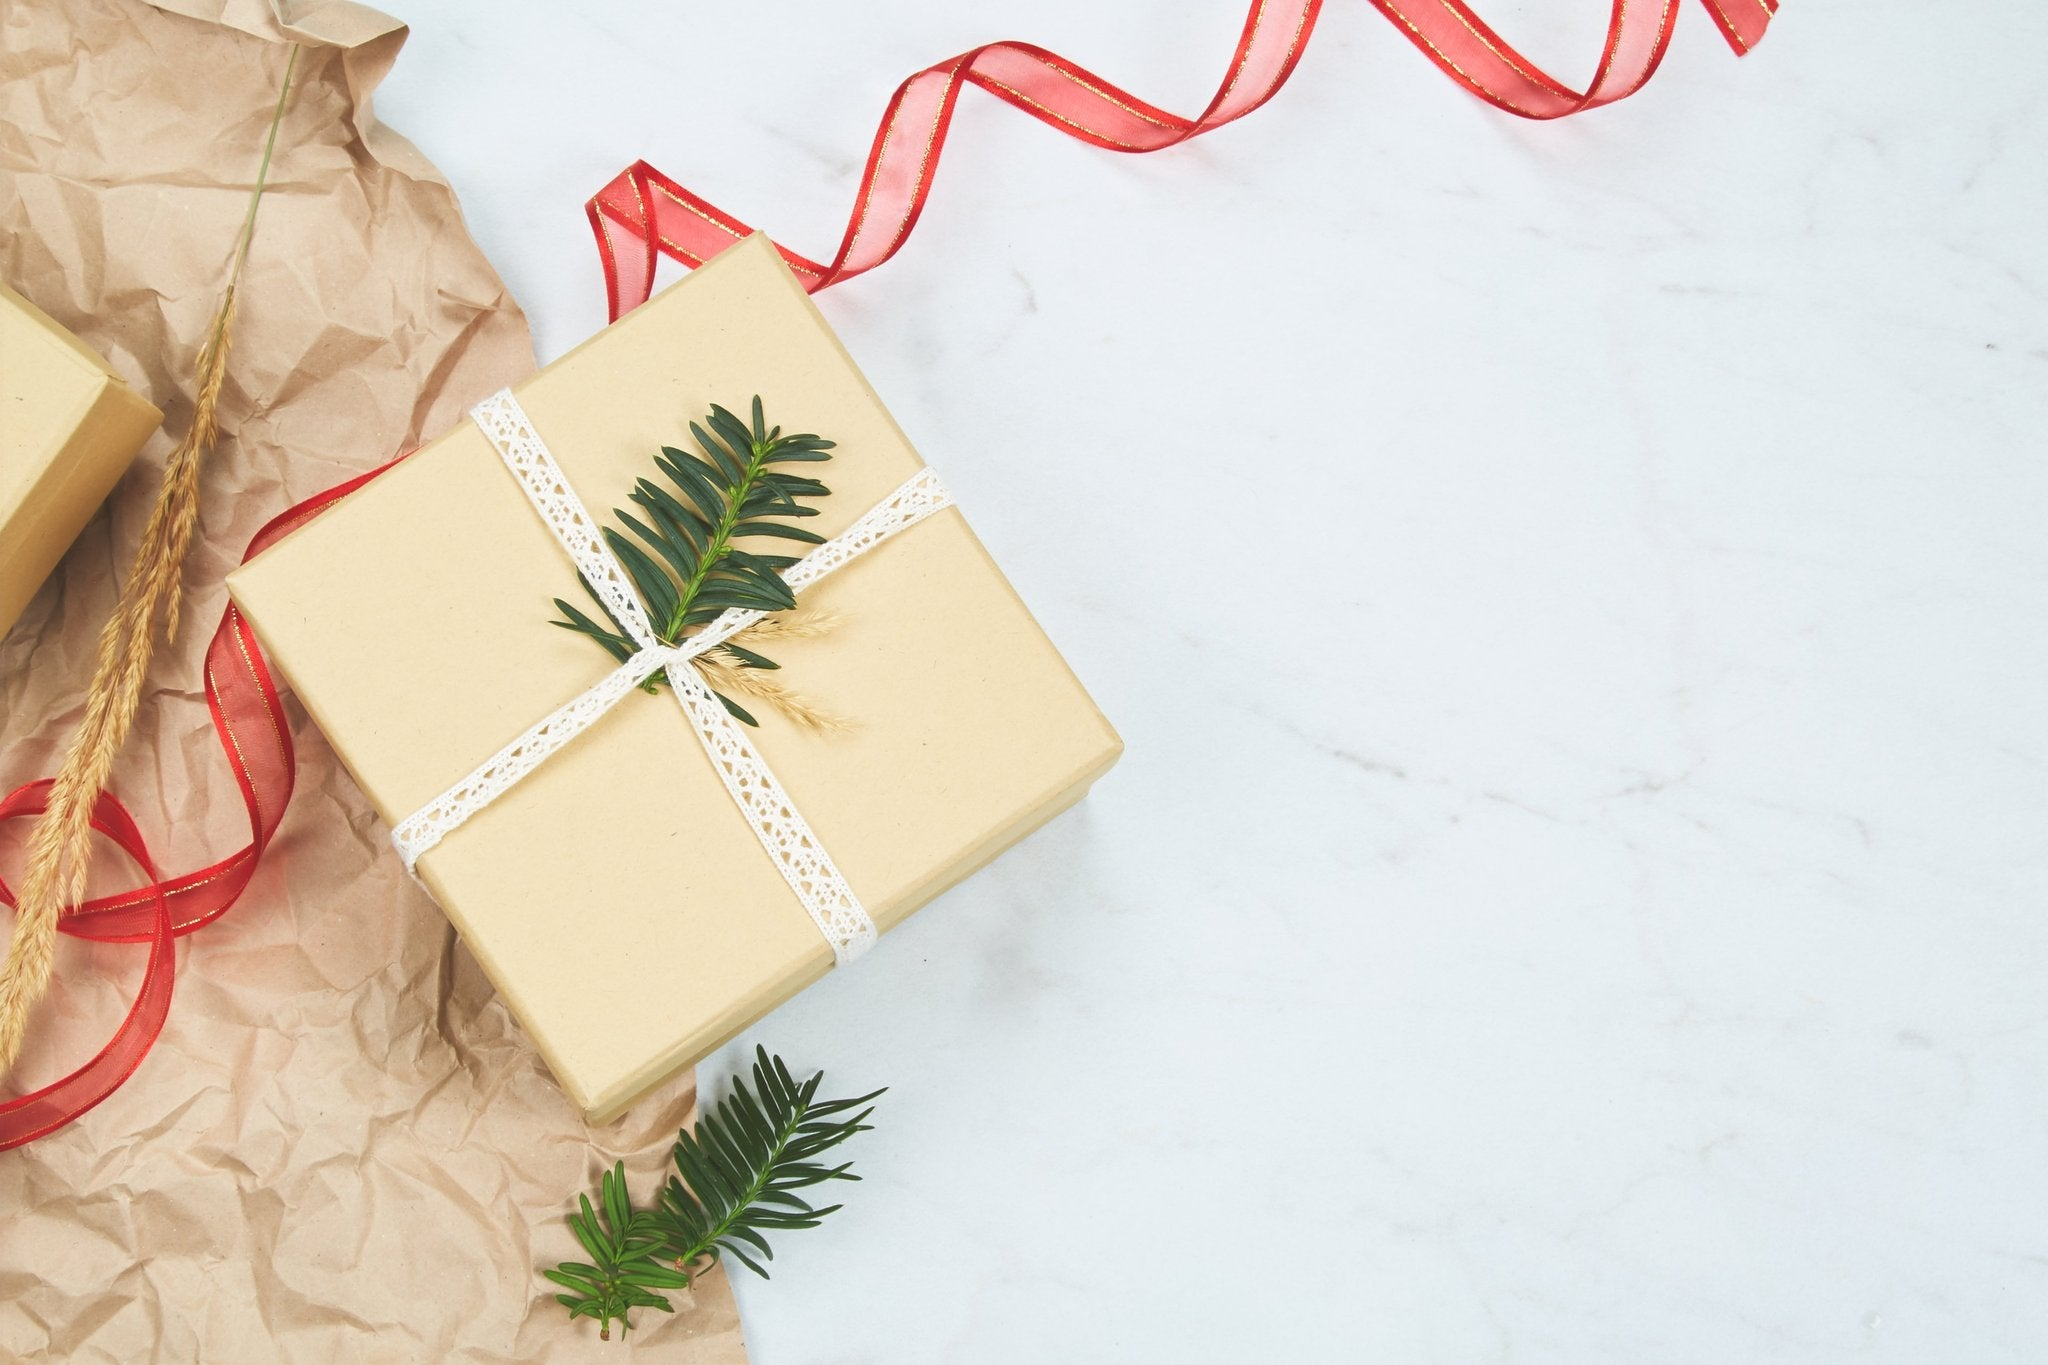 GIFT GIVING MADE EASY!